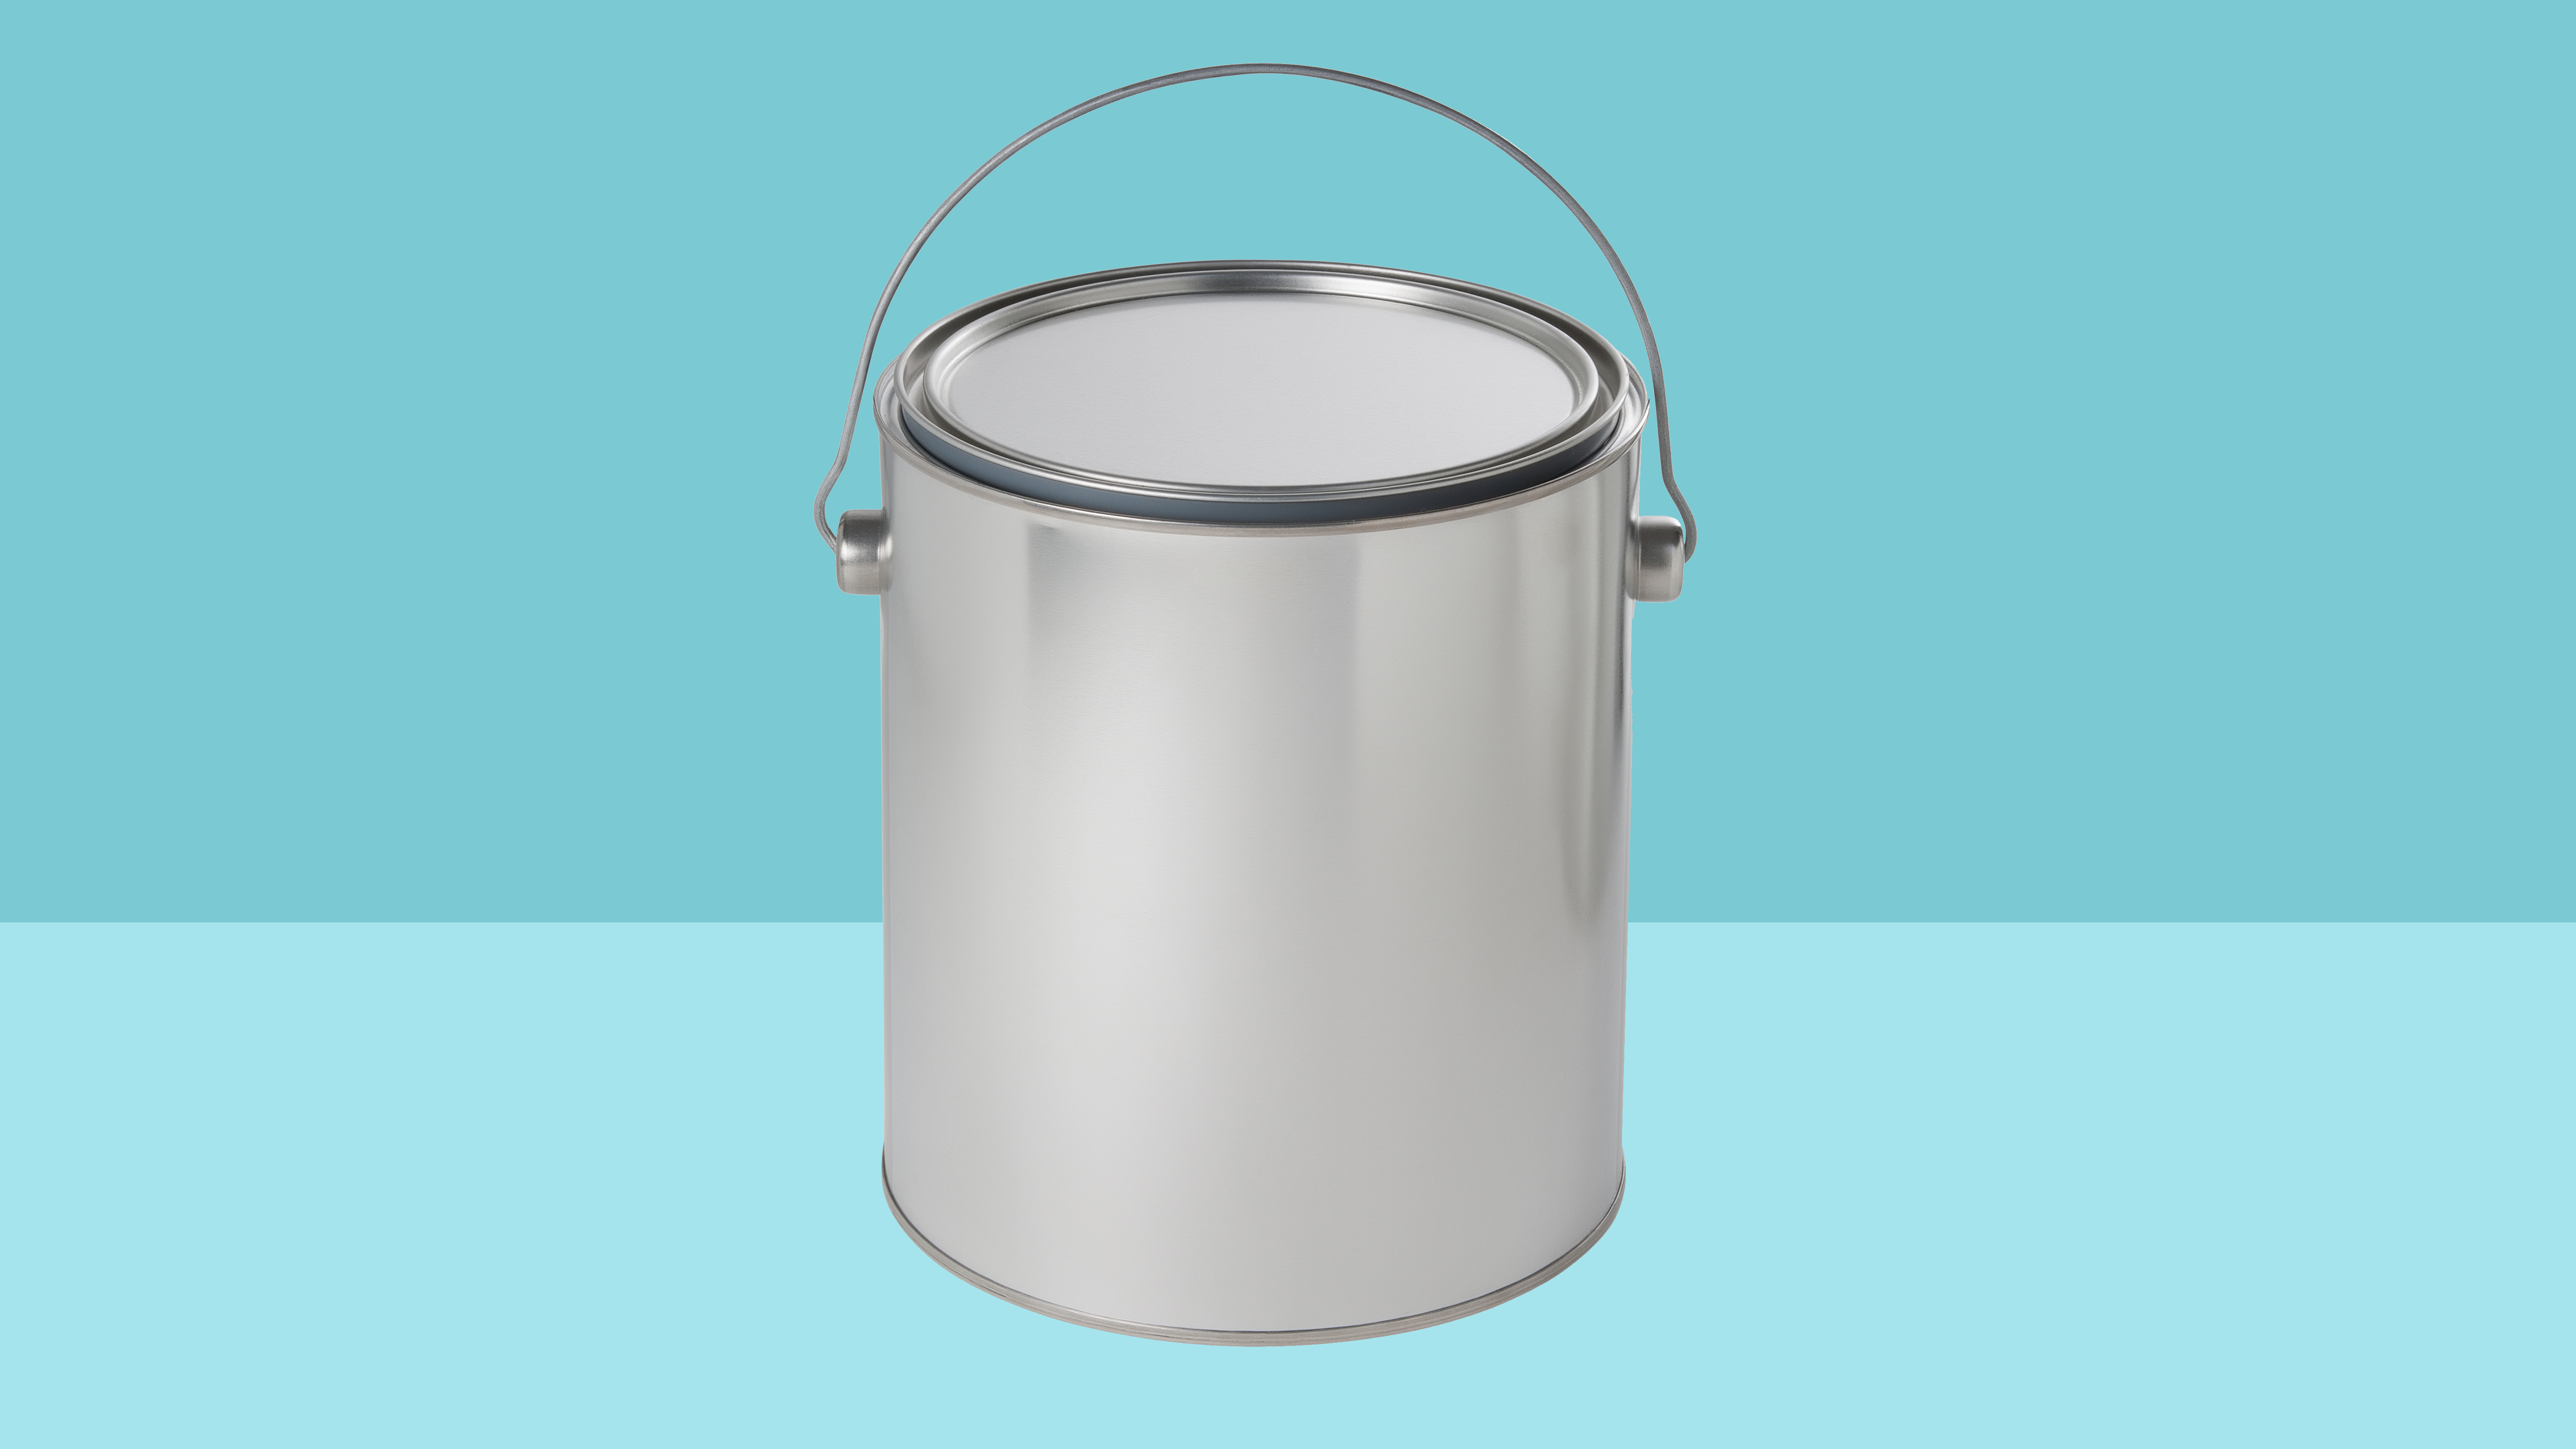 paint can on blue background